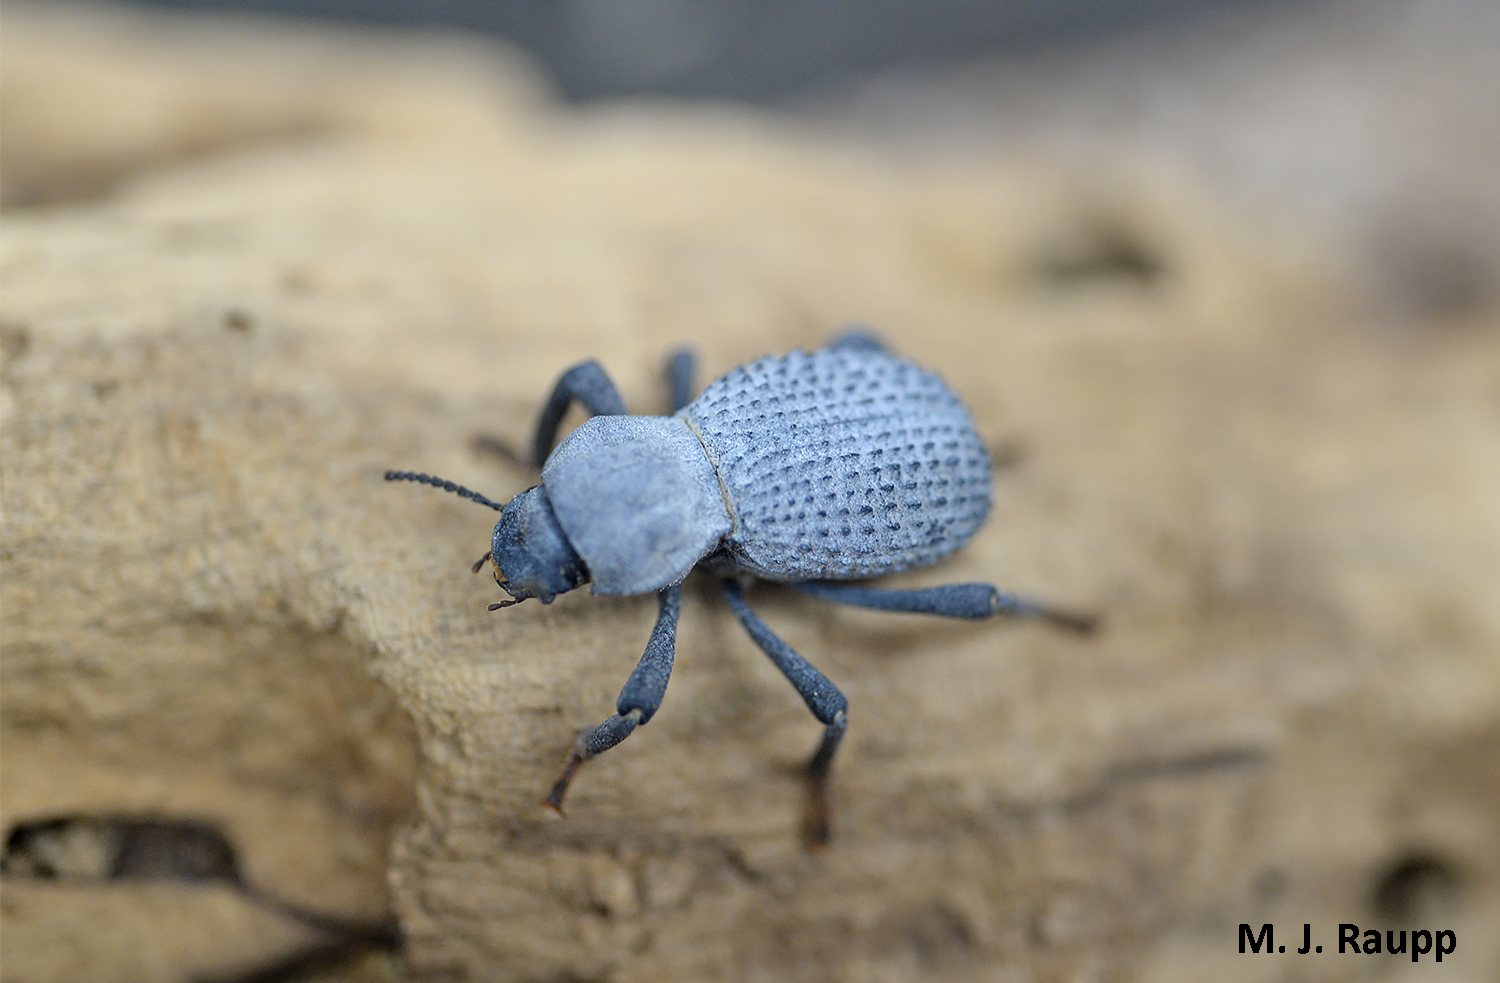 The Blue death feigning beetle prefers playing possum.